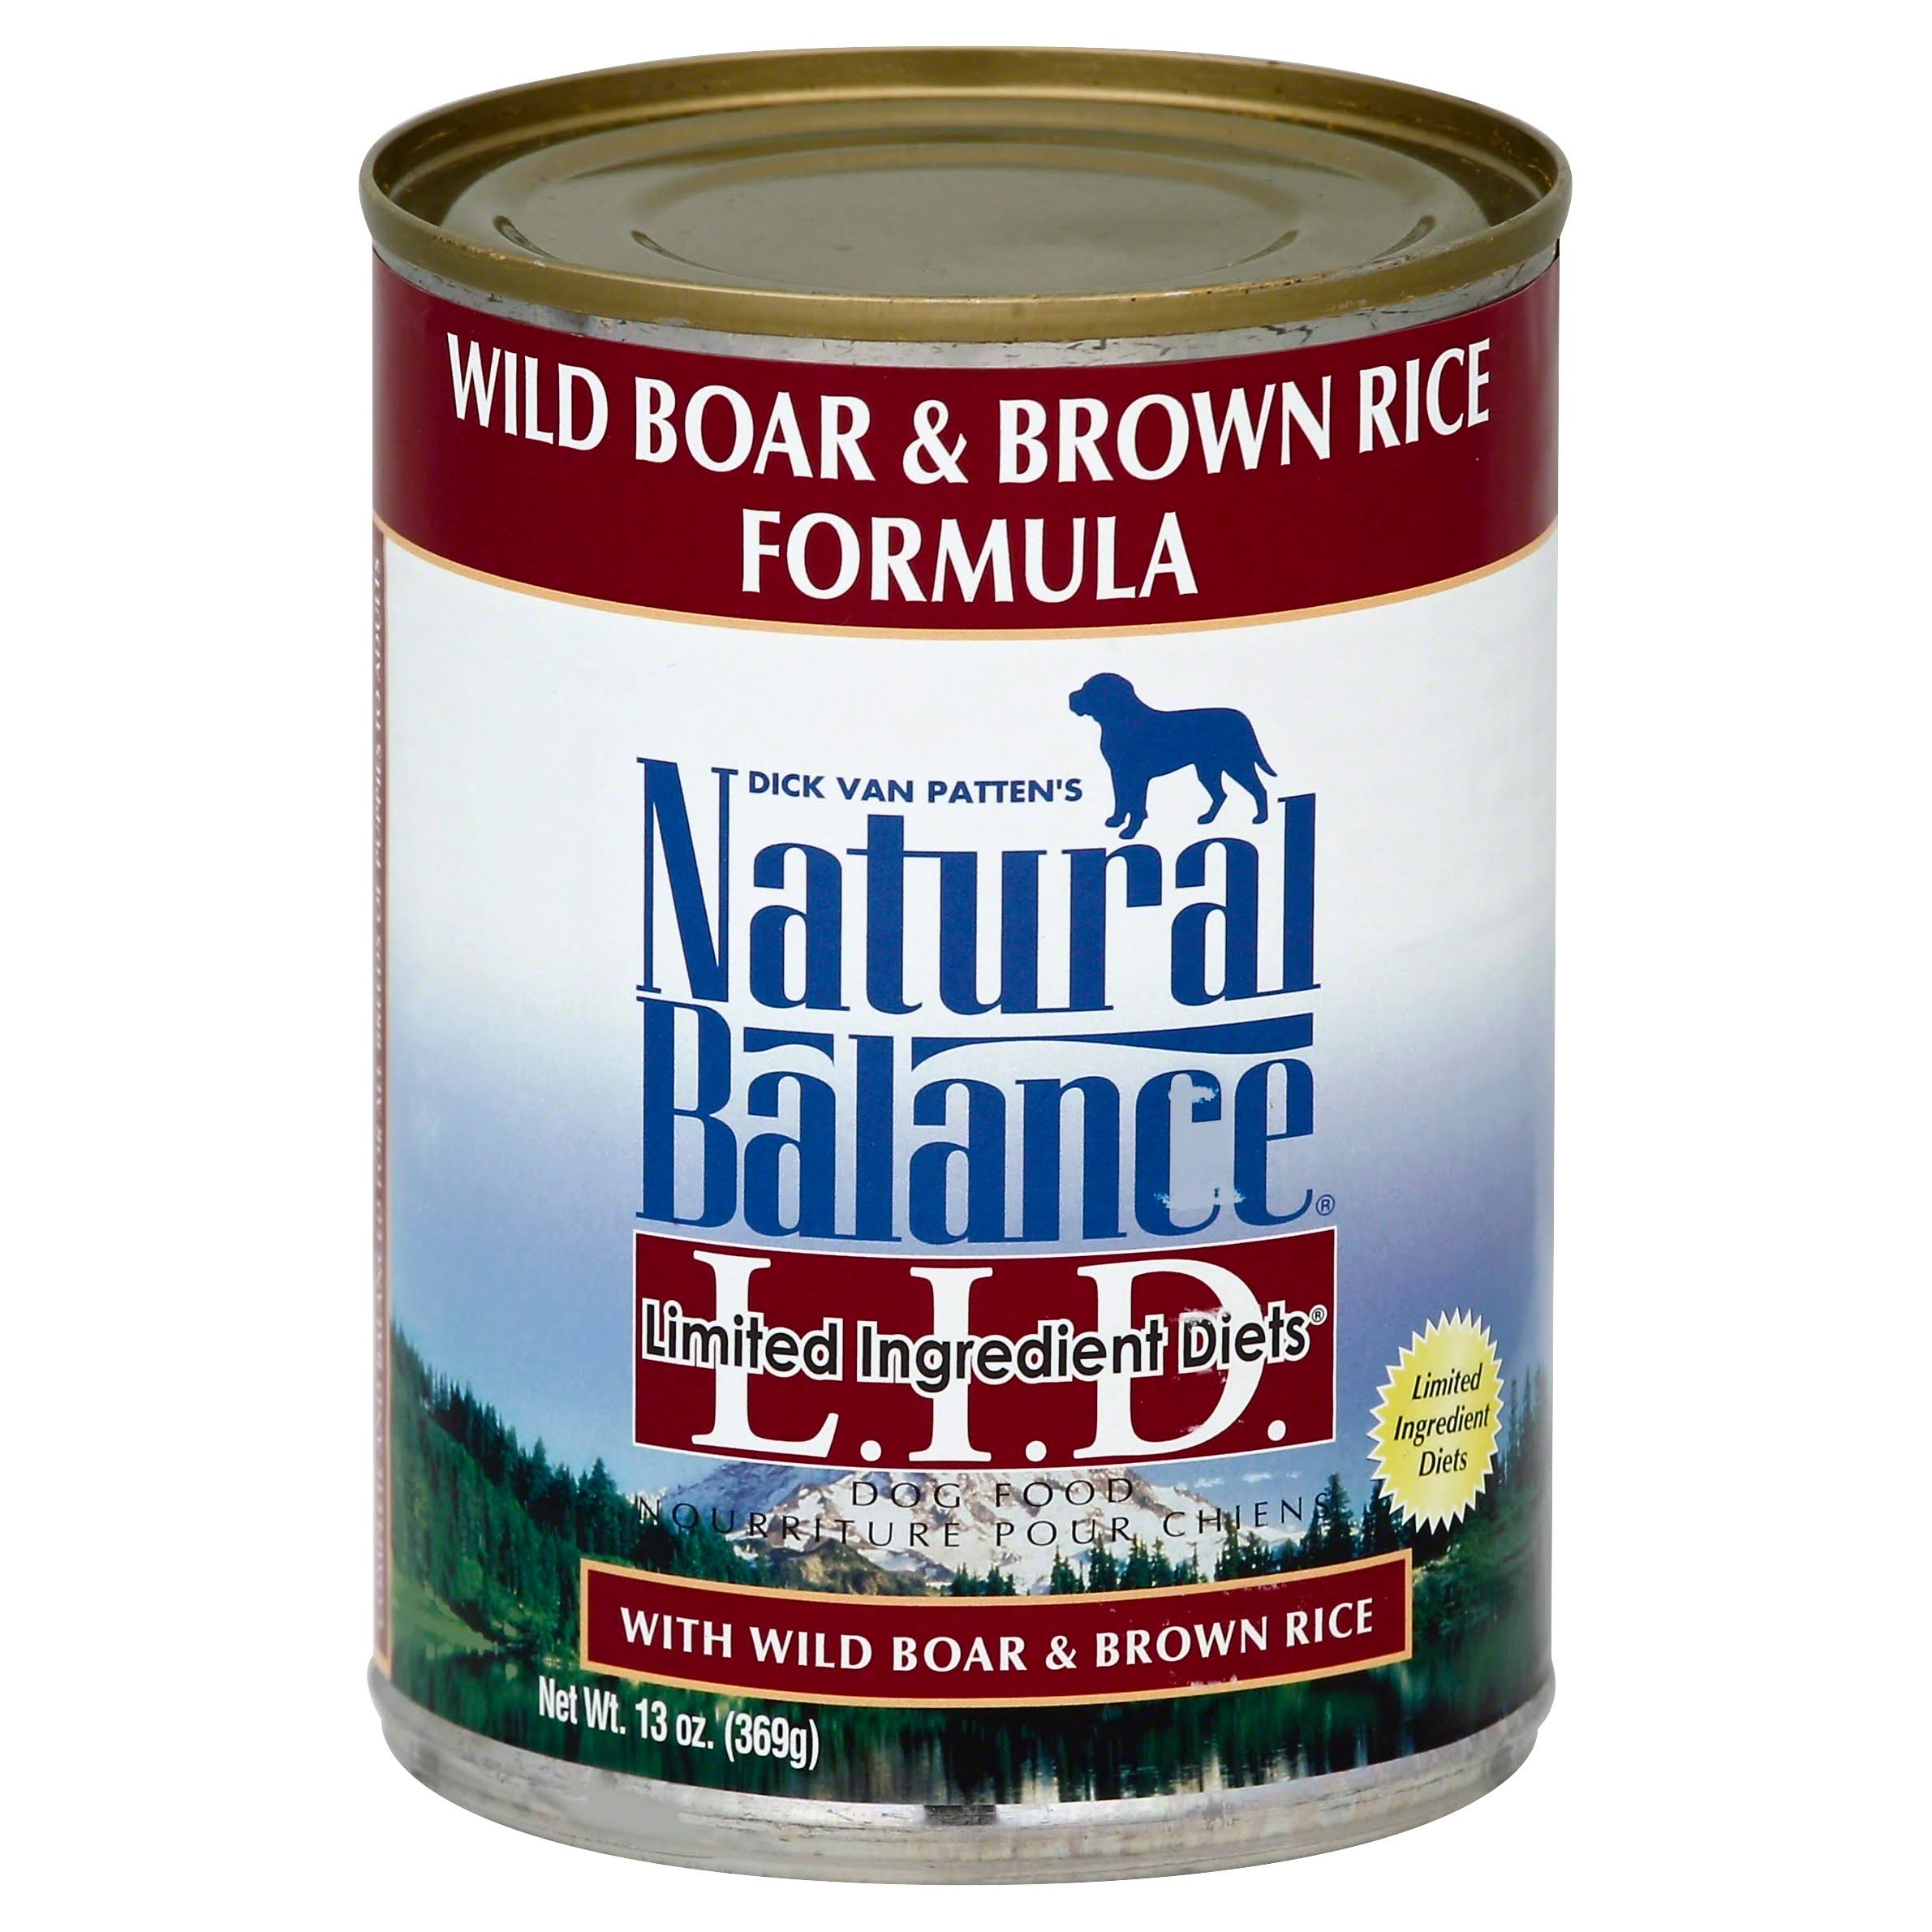 Natural Balance L.I.D. Limited Ingredient Diets Dog Food, Wild Boar & Brown Rice Formula - 13 oz